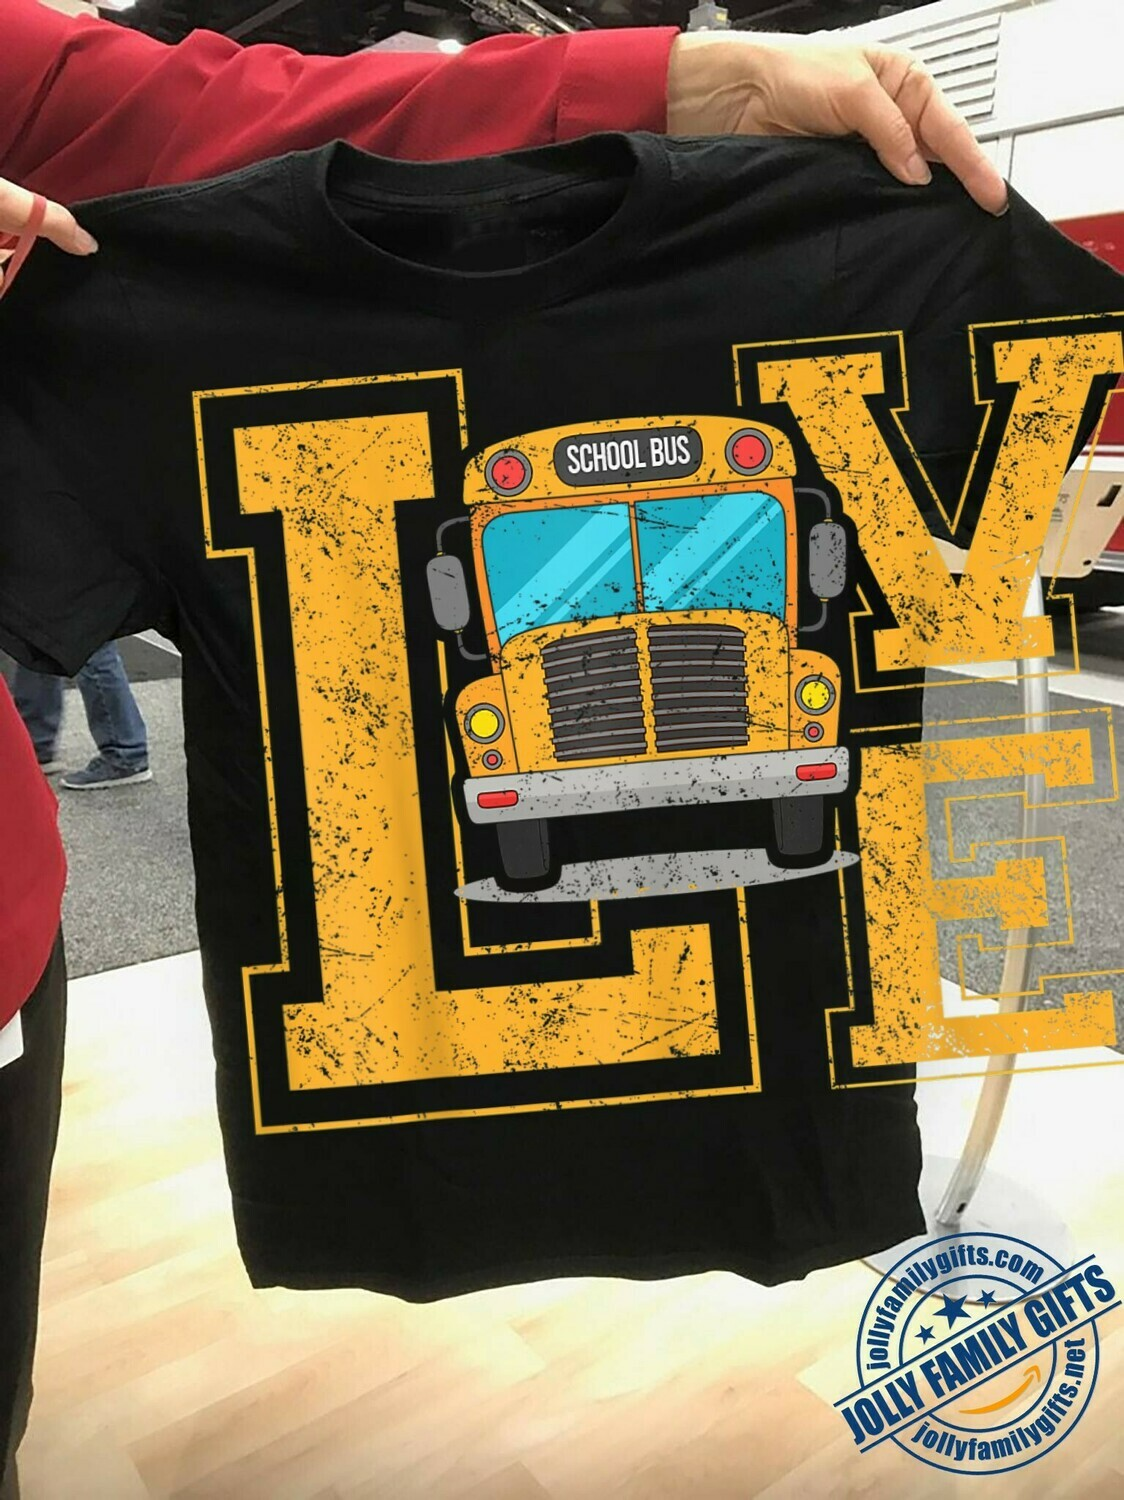 Love School Bus Driver Be Nice Wheels on the Bus Go Round and Round Gift For Kid Men Women Driver Bus T-Shirt Hoodie Sweatshirt Sweater Tee Kids Youth Gifts Jolly Family Gifts